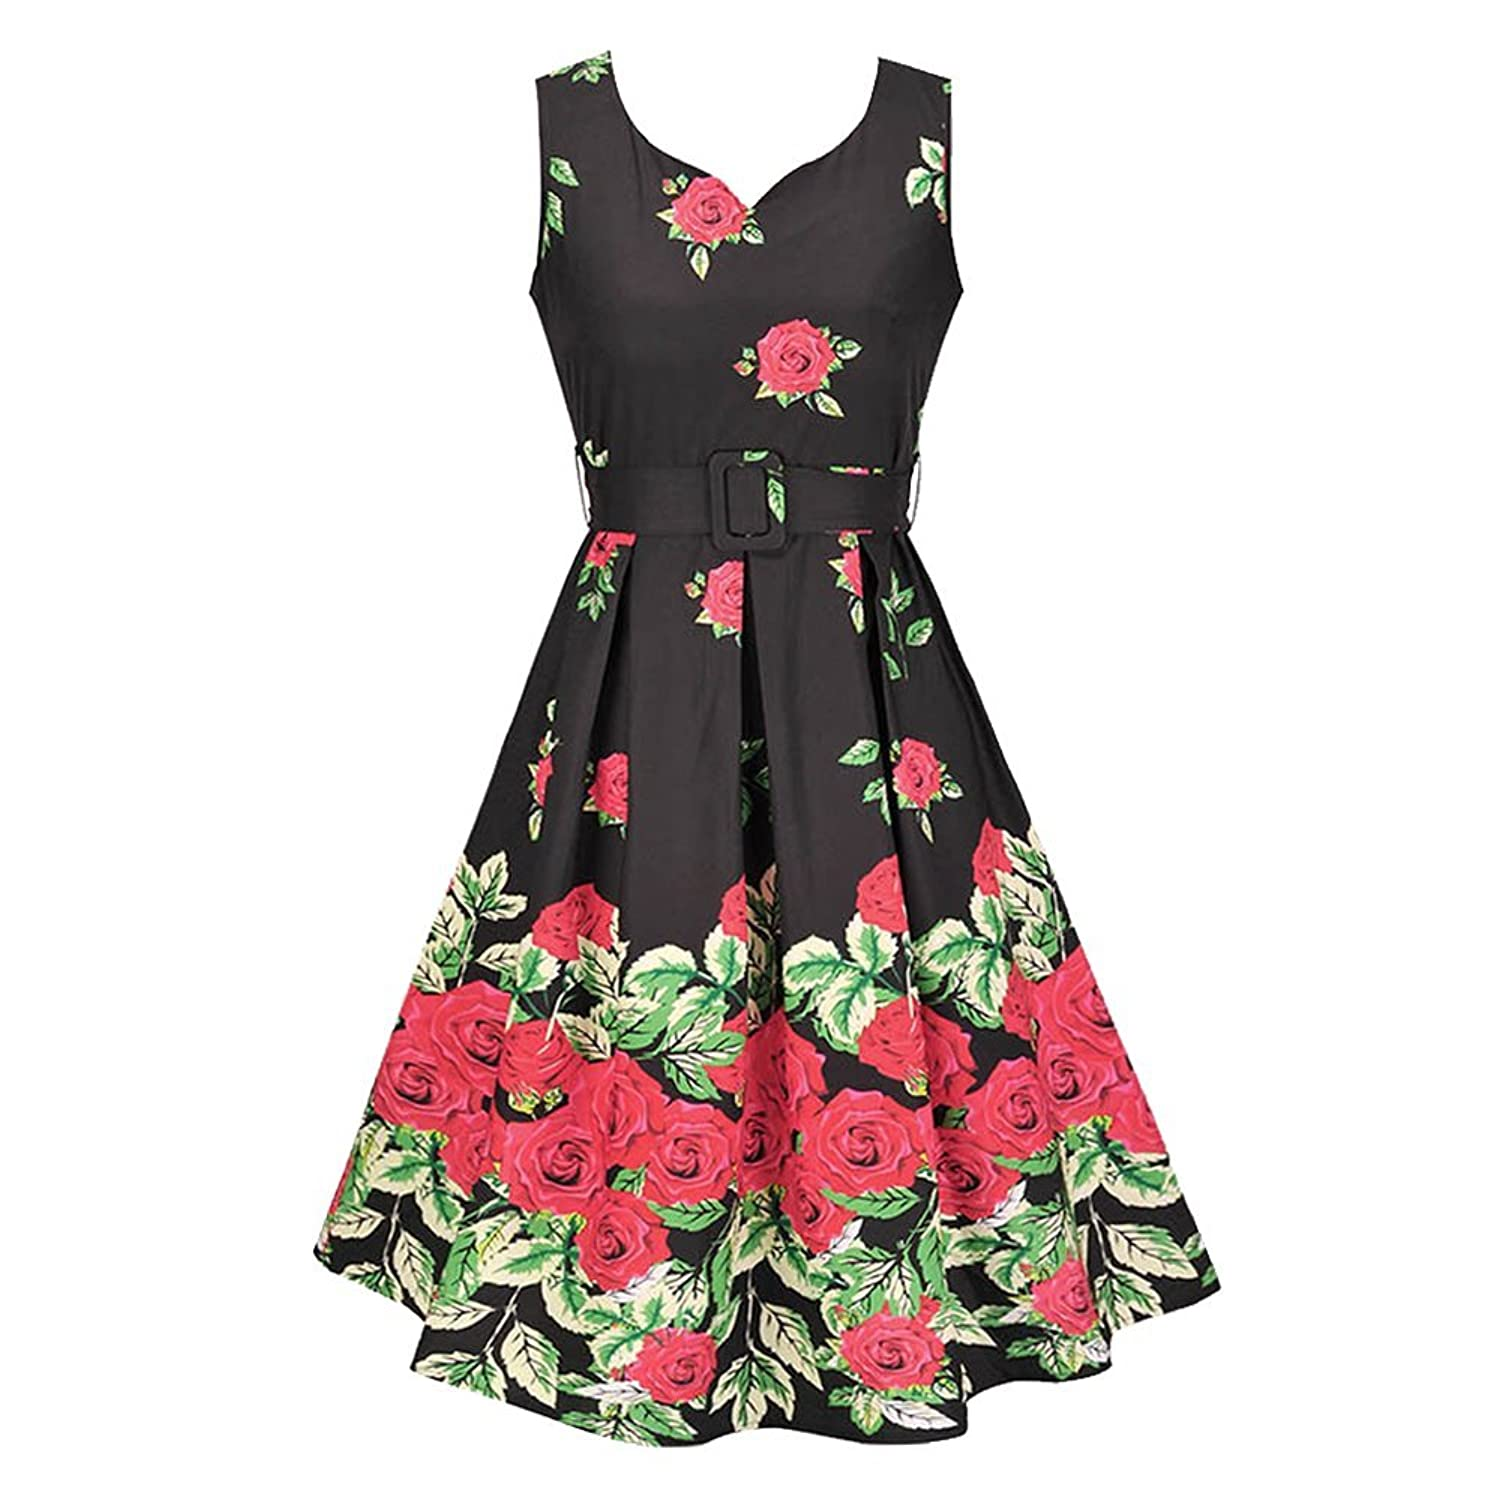 80%OFF MY DRESS CODE Vintage 1950\'s Summer Floral Garden Party ...